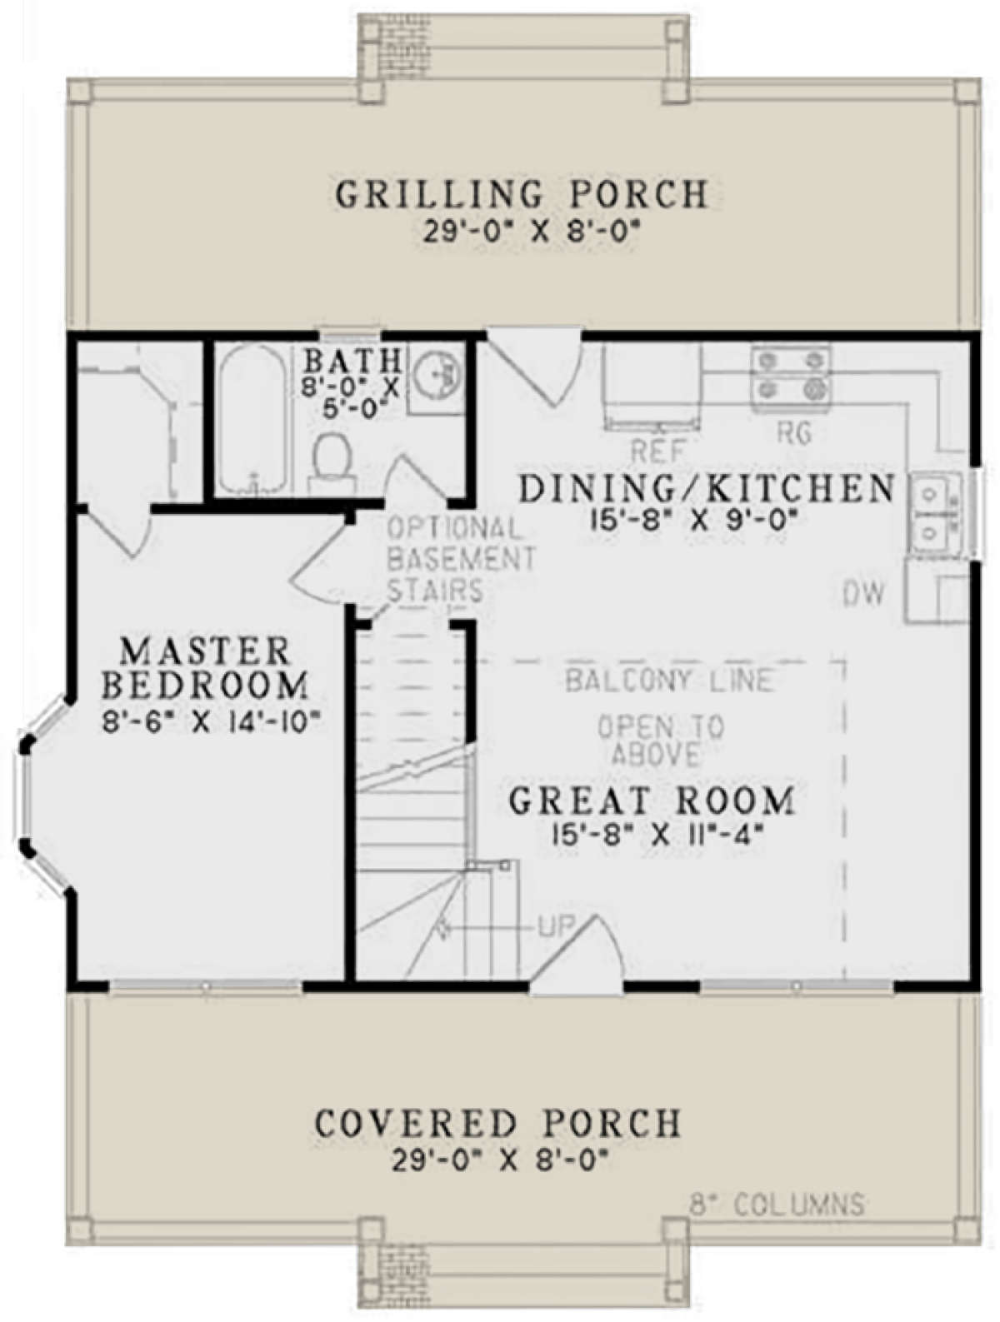 House Plan 110 00632 Small Plan 975 Square Feet 2 Bedrooms 1 Bathroom Tiny Houses Plans With Loft Small House Plans Log Cabin Floor Plans